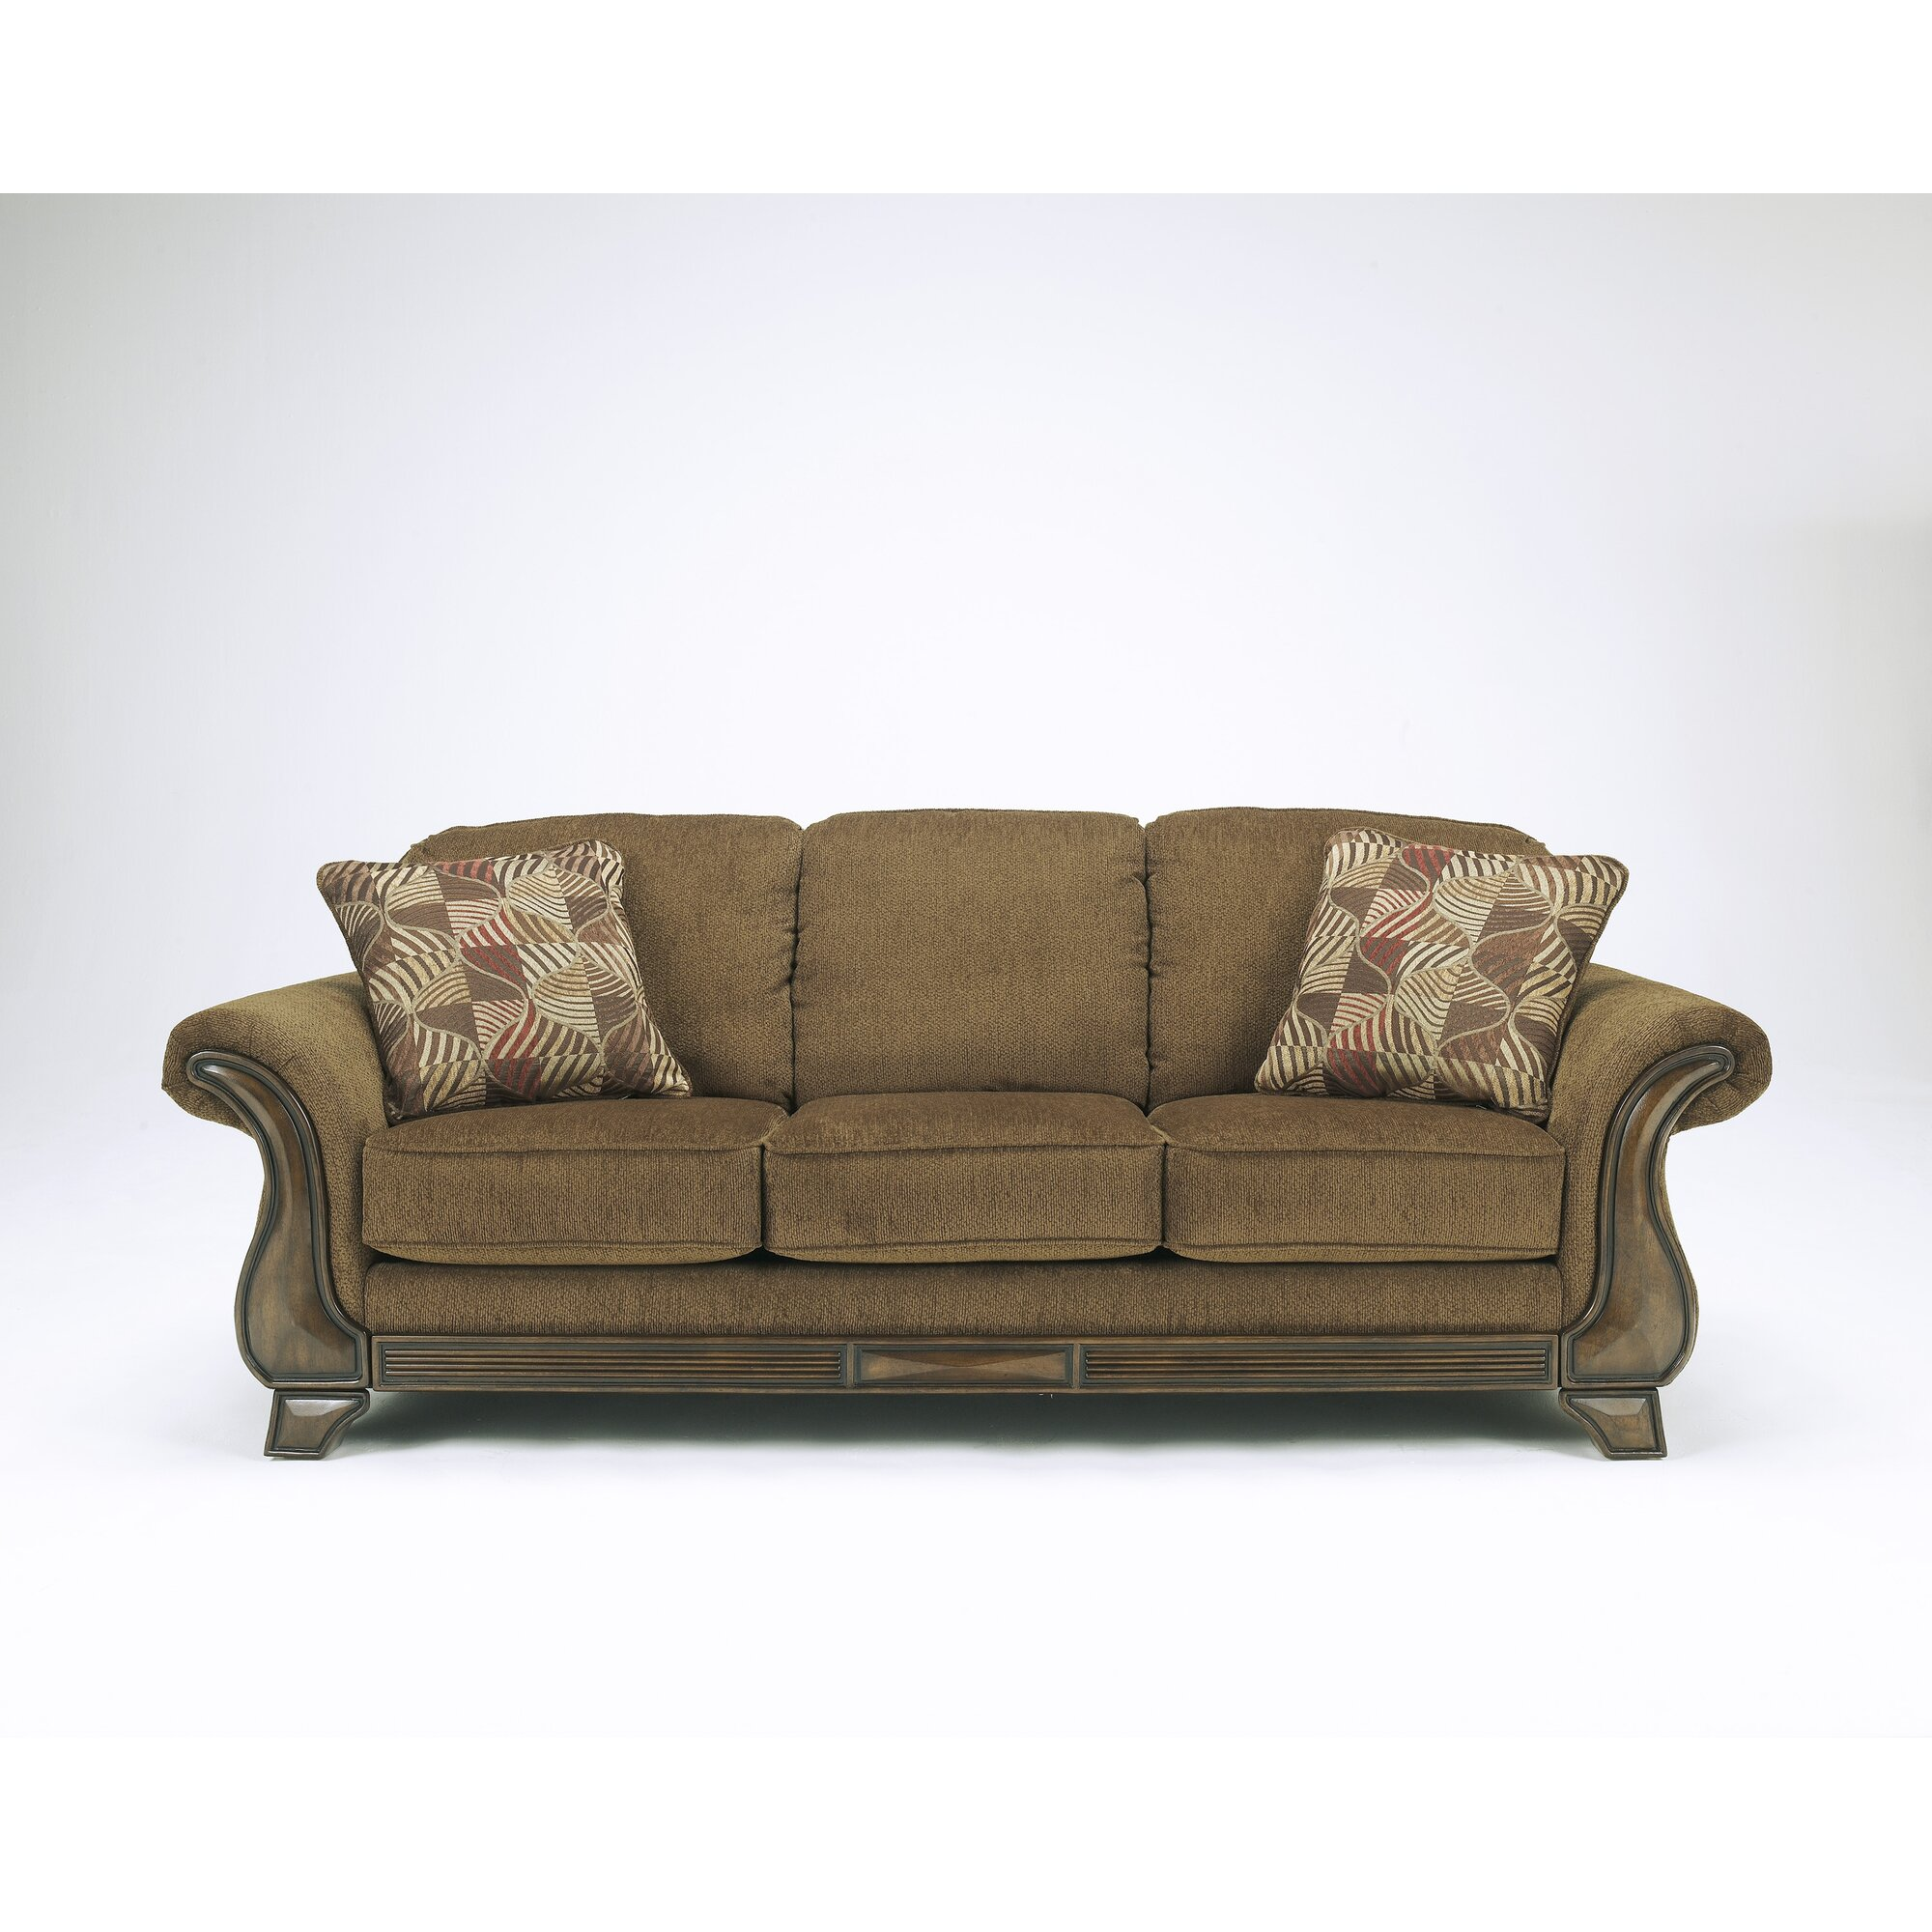 Signature Design by Ashley Elberta Sofa & Reviews | Wayfair